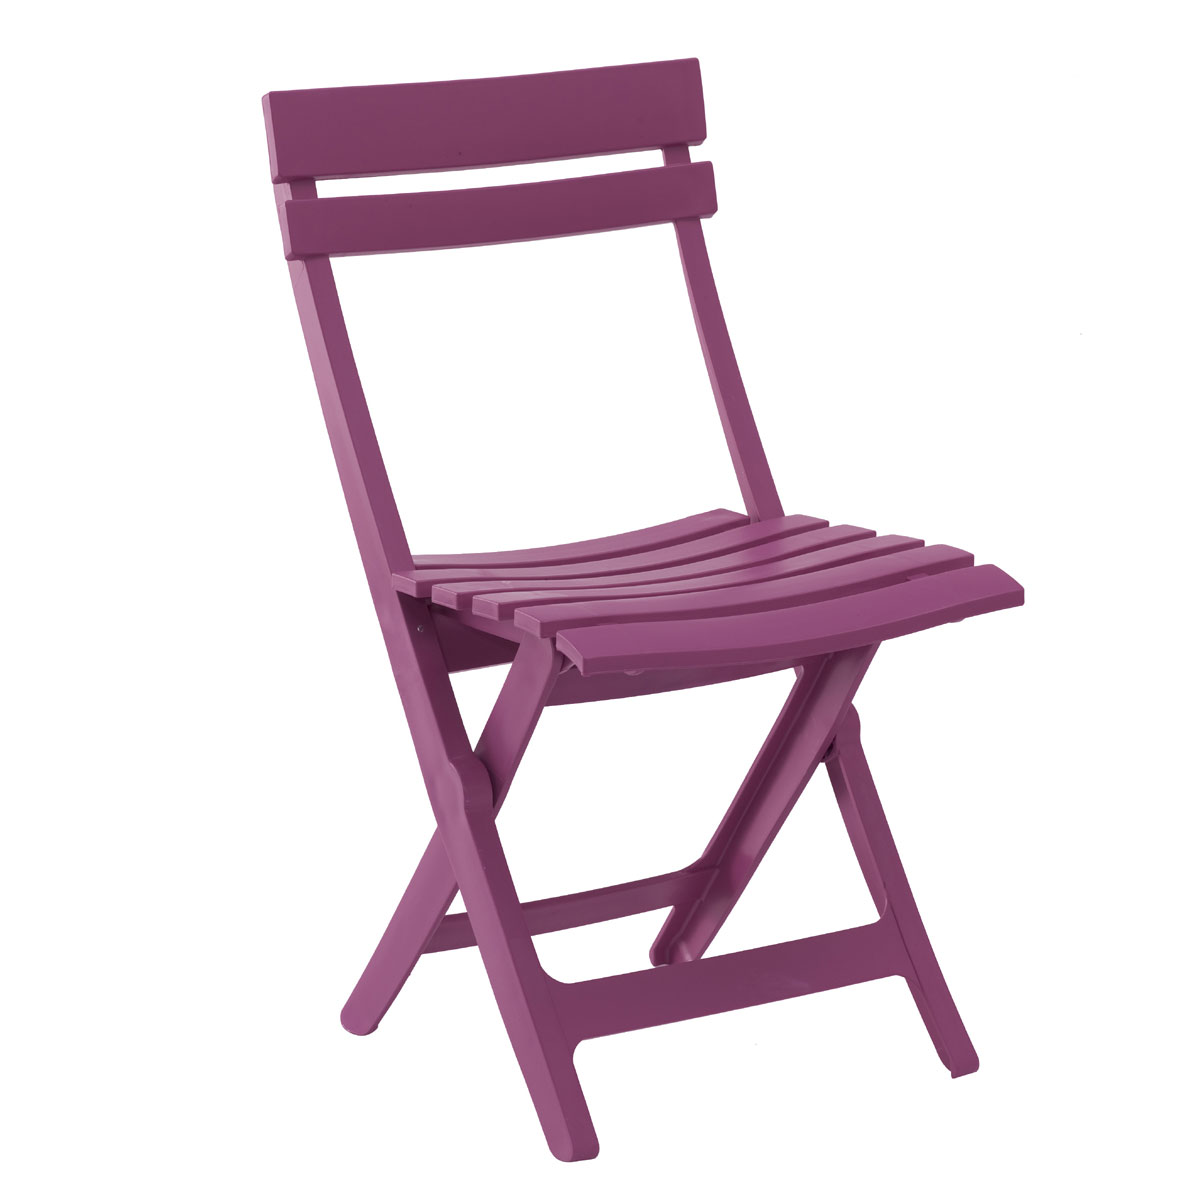 Chaises De Jardin Design Et Sieges Outdoor Zendart Design